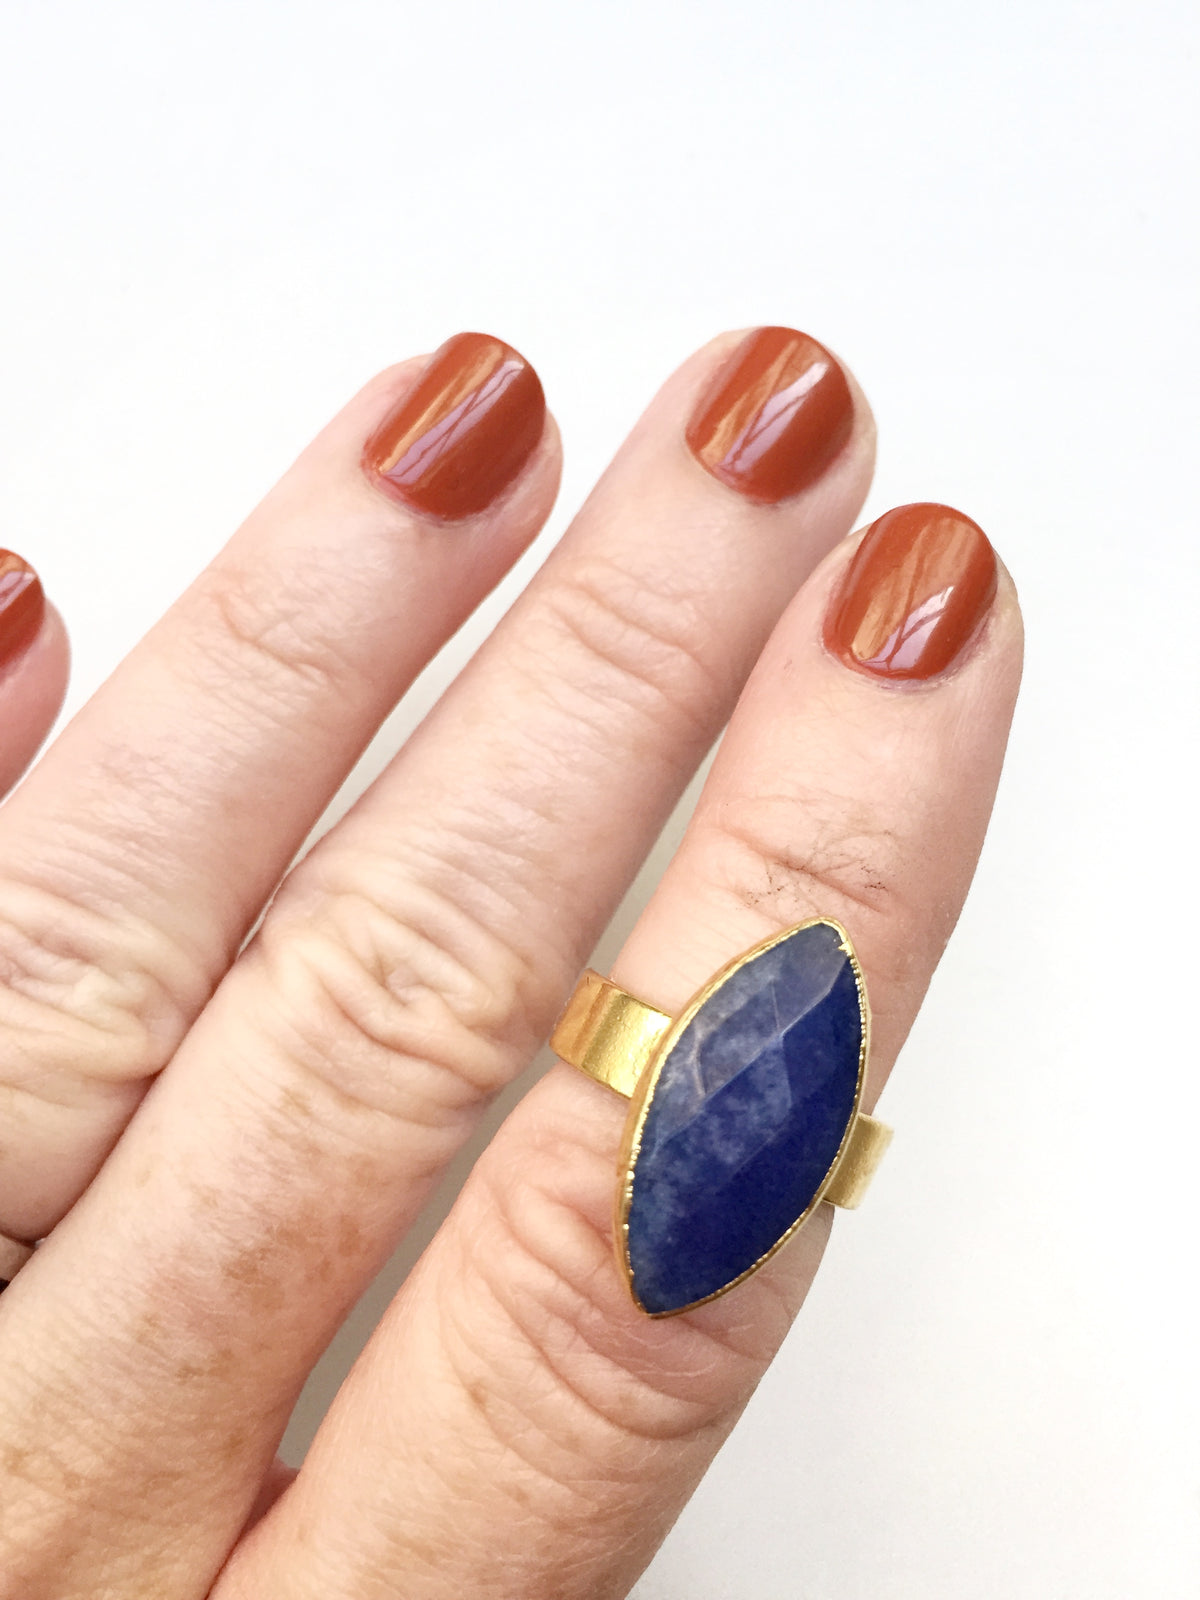 blue jade marquis ring on hand